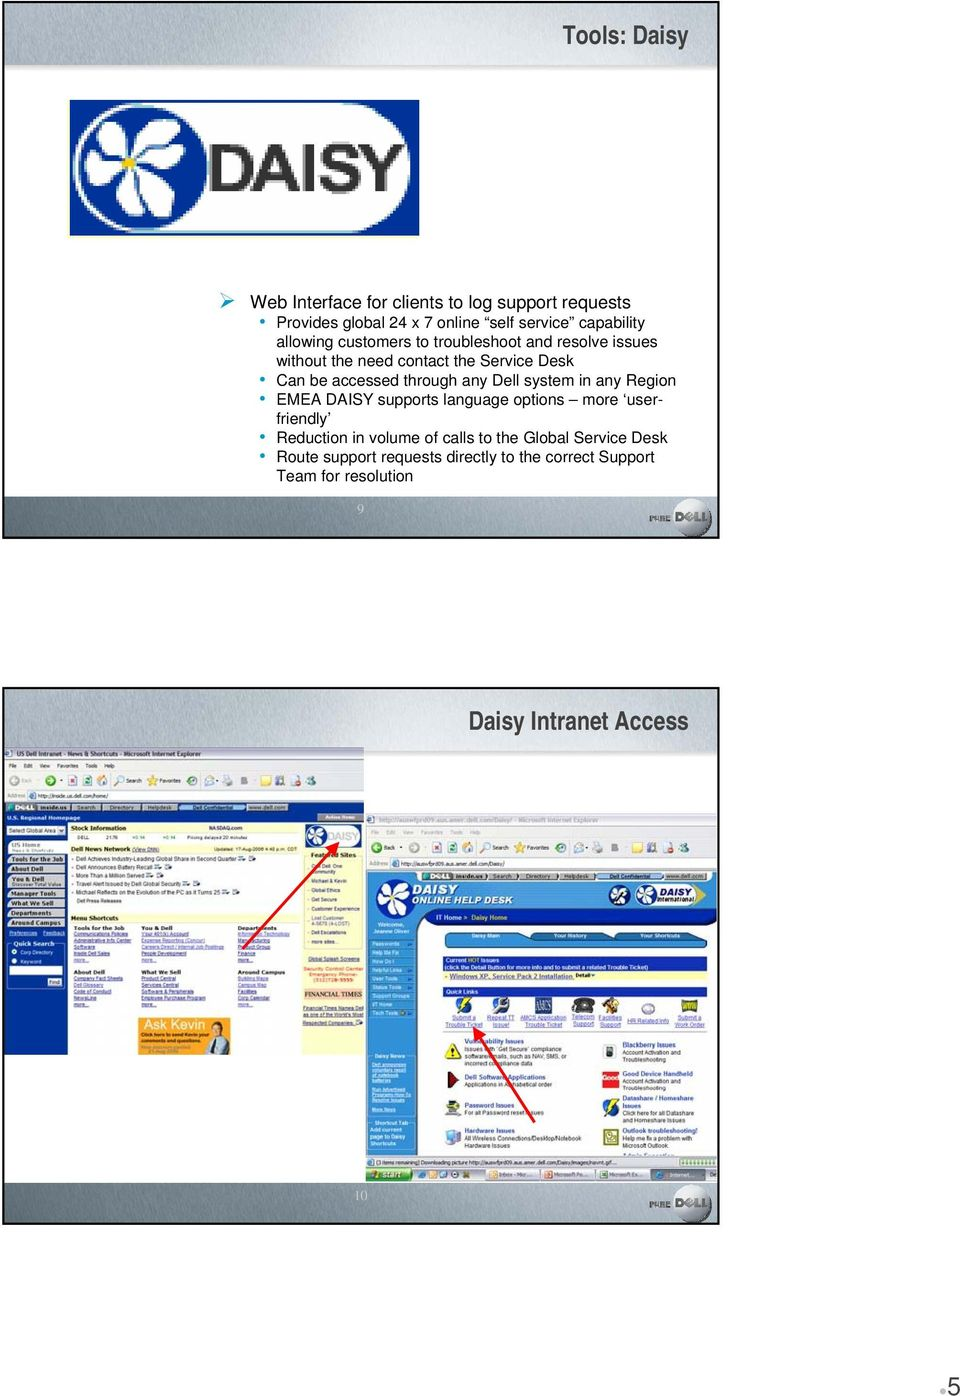 any Dell system in any Region EMEA DAISY supports language options more userfriendly Reduction in volume of calls to the